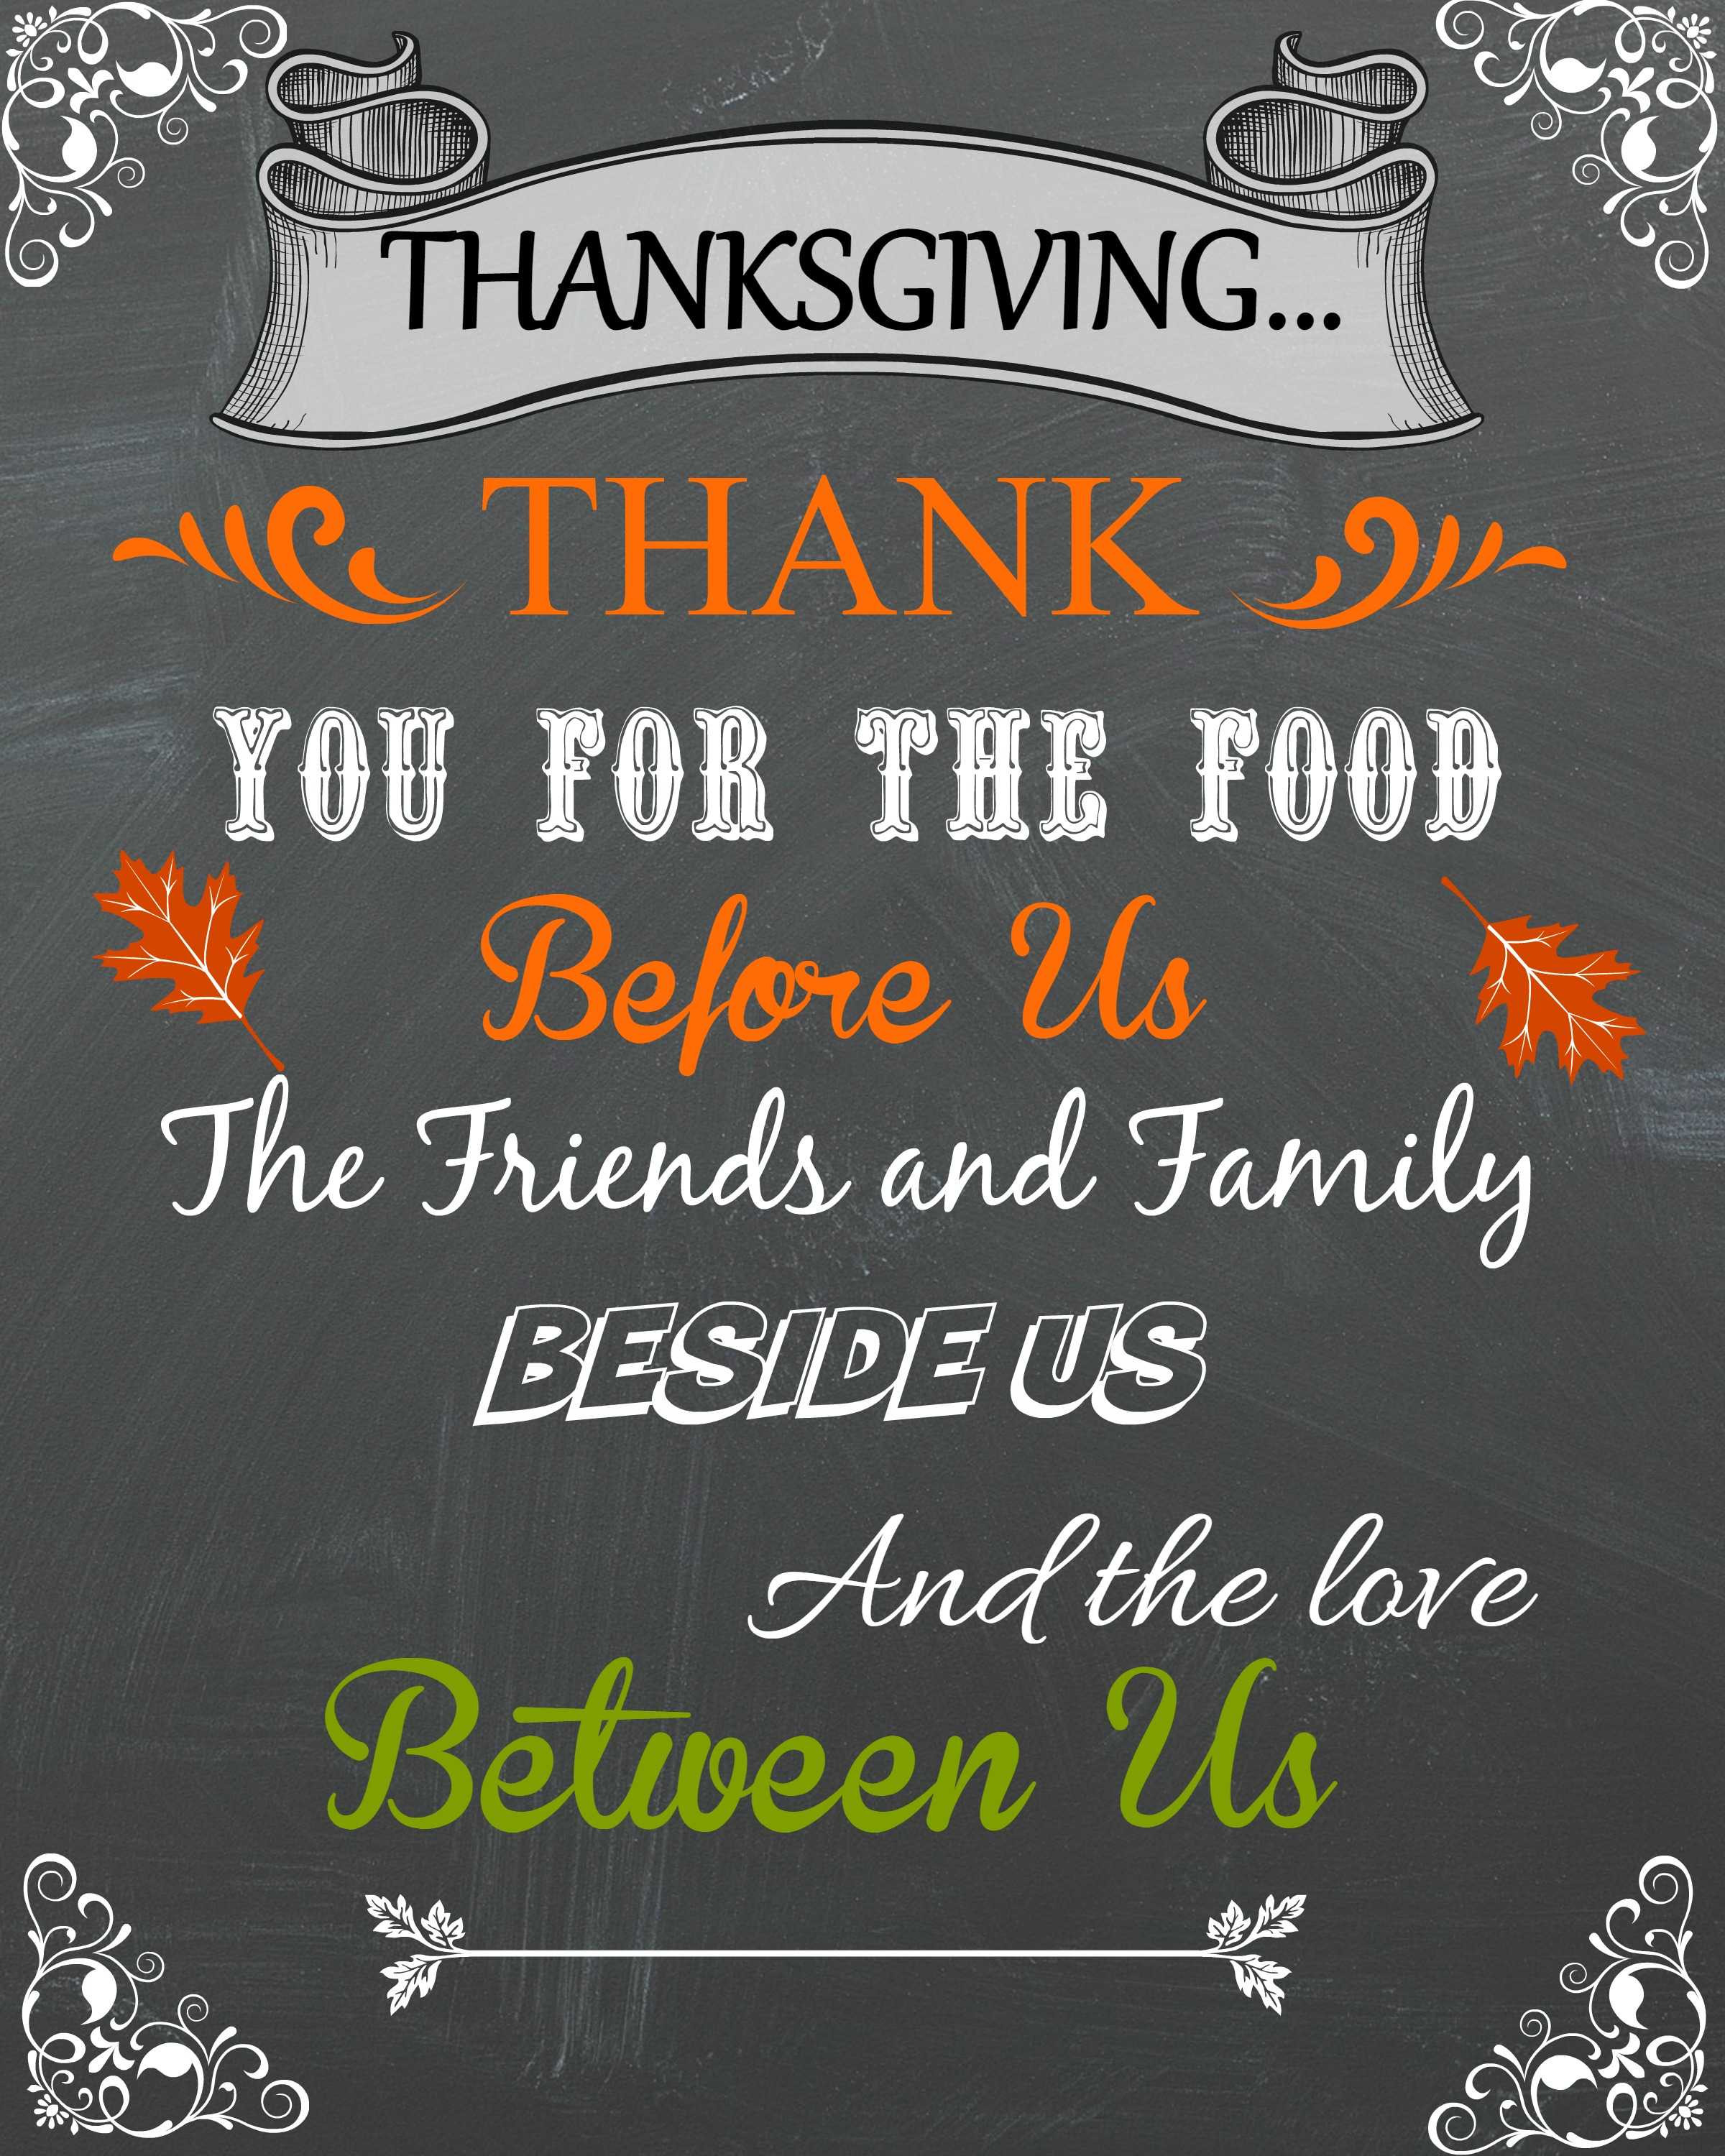 Thanksgiving Blessing Quotes  Blessings Debbiedoos